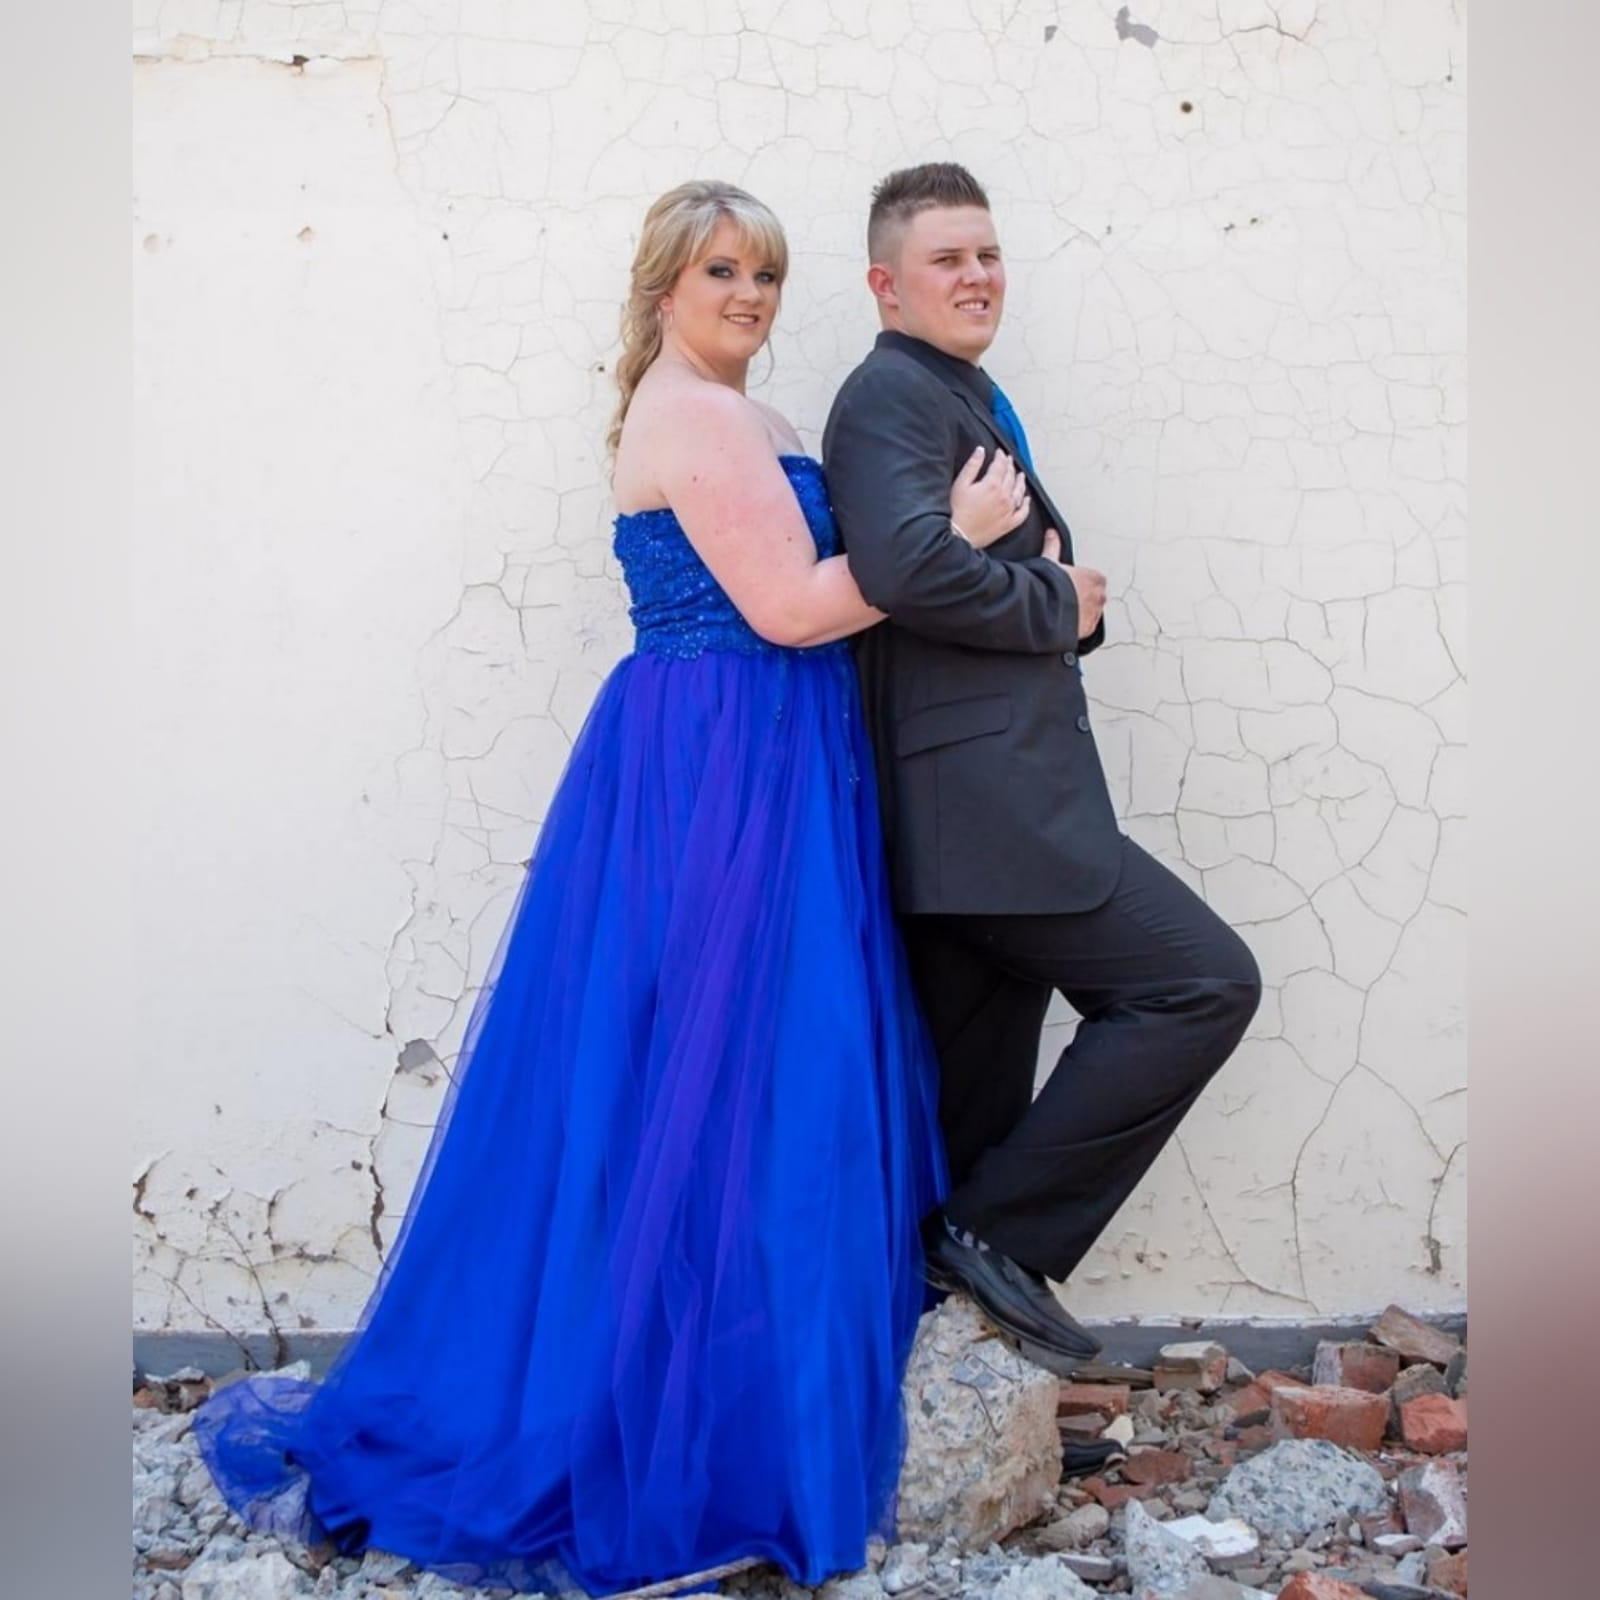 Royal blue boobtube tulle prom dress 7 royal blue boobtube tulle prom dress. Bodice with a sweetheart neckline and detailed with beaded lace falling onto the tulle skirt.